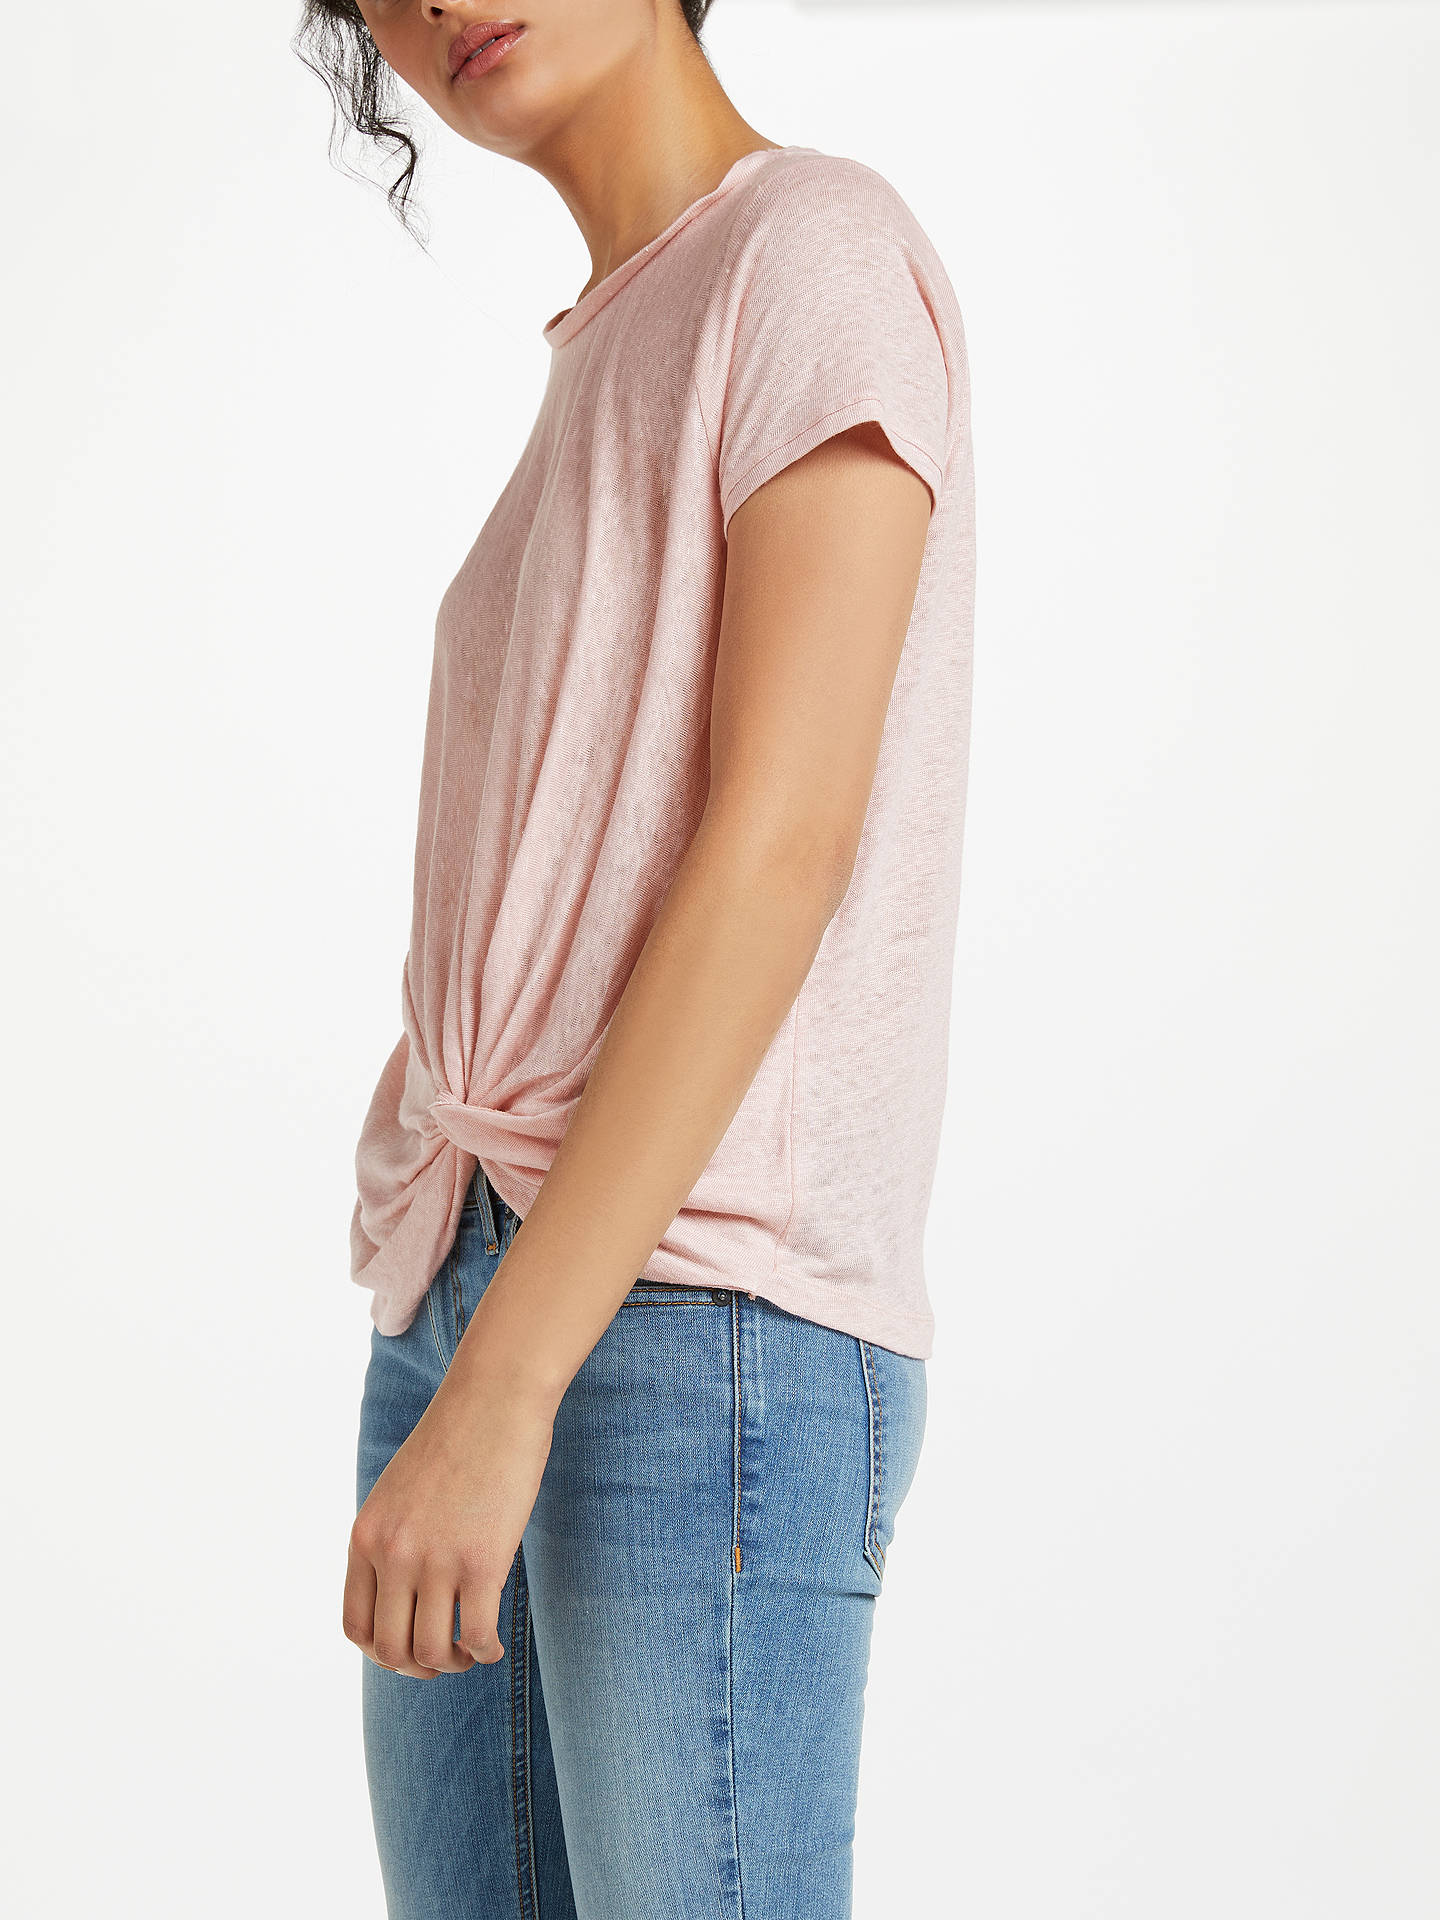 BuyAND/OR Knot Hem Linen Top, Desert Pink, 8 Online at johnlewis.com